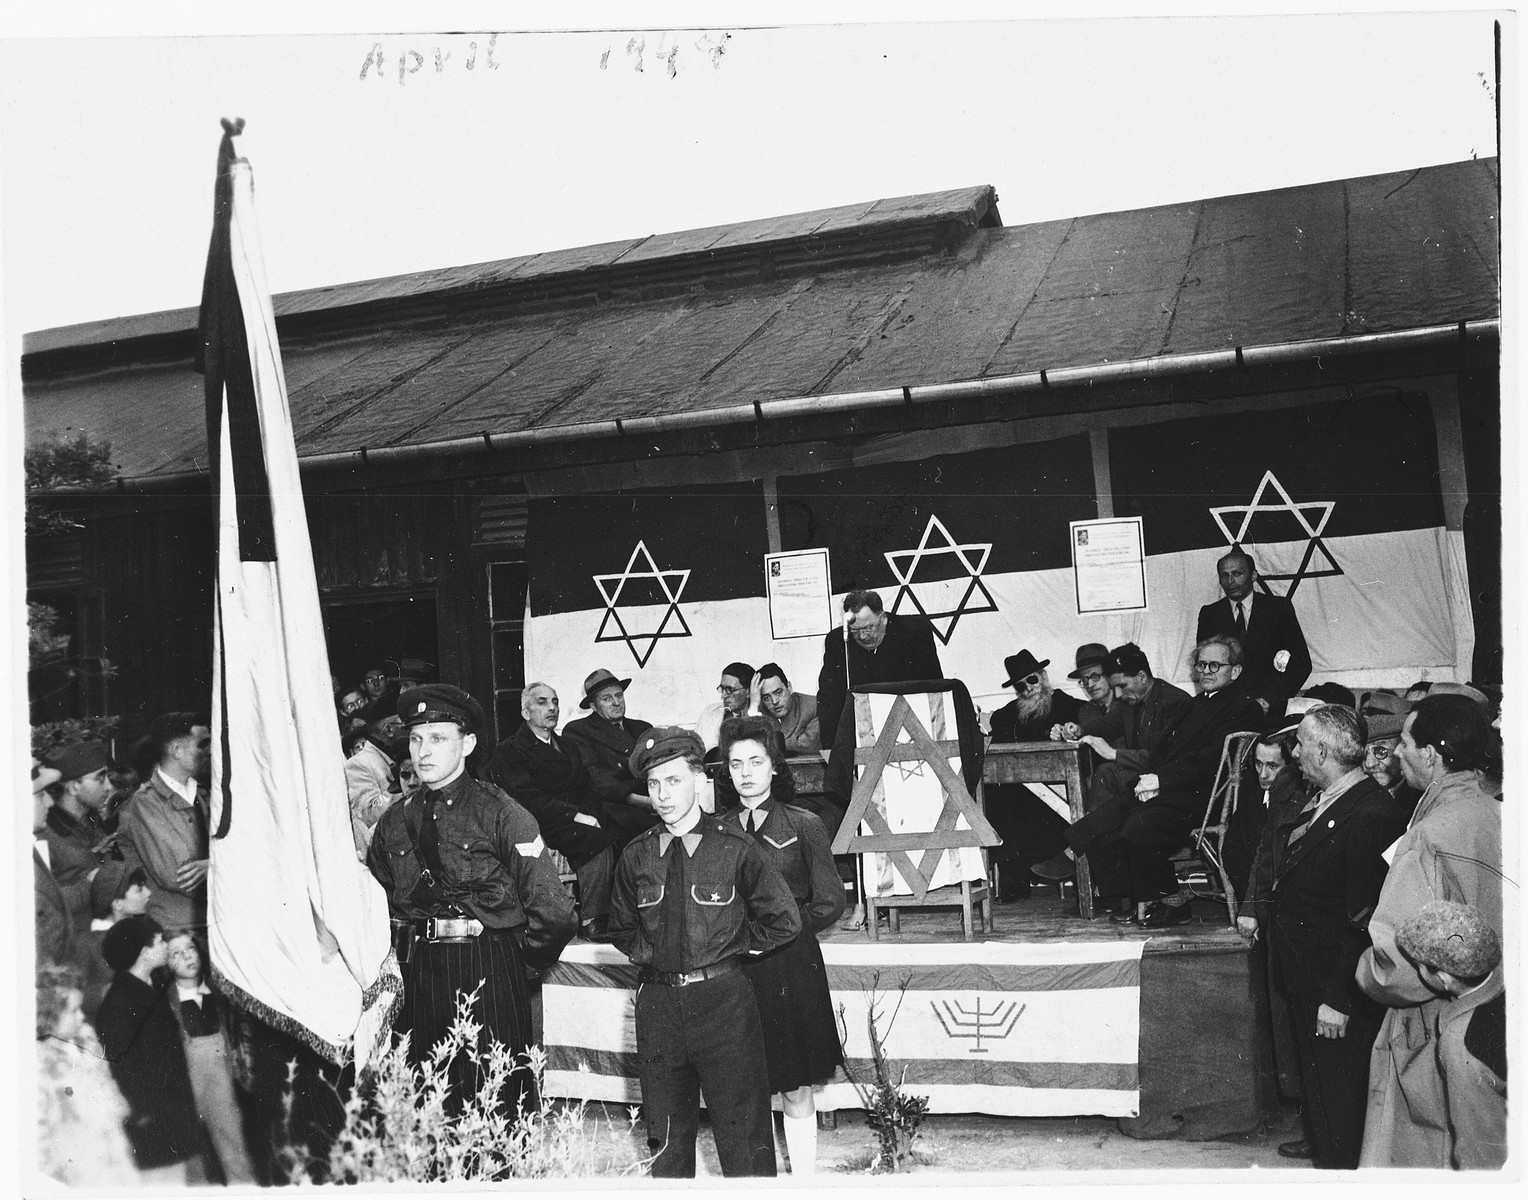 Members of the Betar youth movement stand at attention with a flag in front of the stage during a community Zionist gathering.